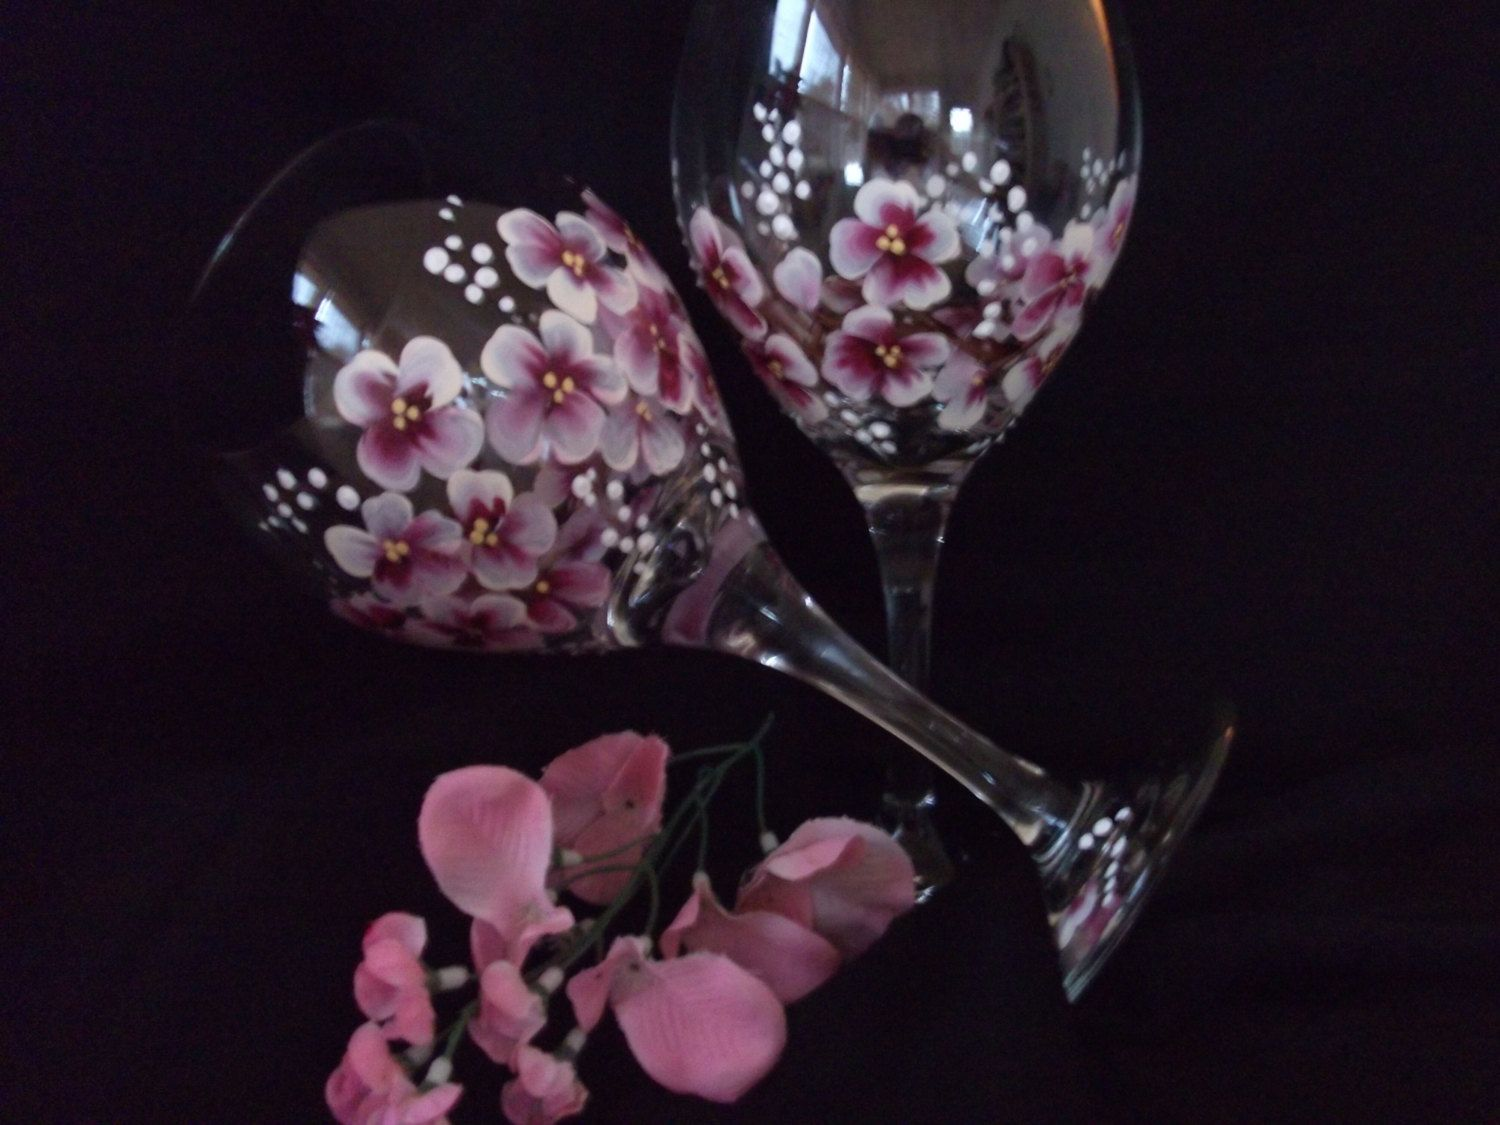 Cherry Blossom Hand Painted Wine Glasses by SusanRuthCreations on Etsy https://www.etsy.com/listing/125041044/cherry-blossom-hand-painted-wine-glasses